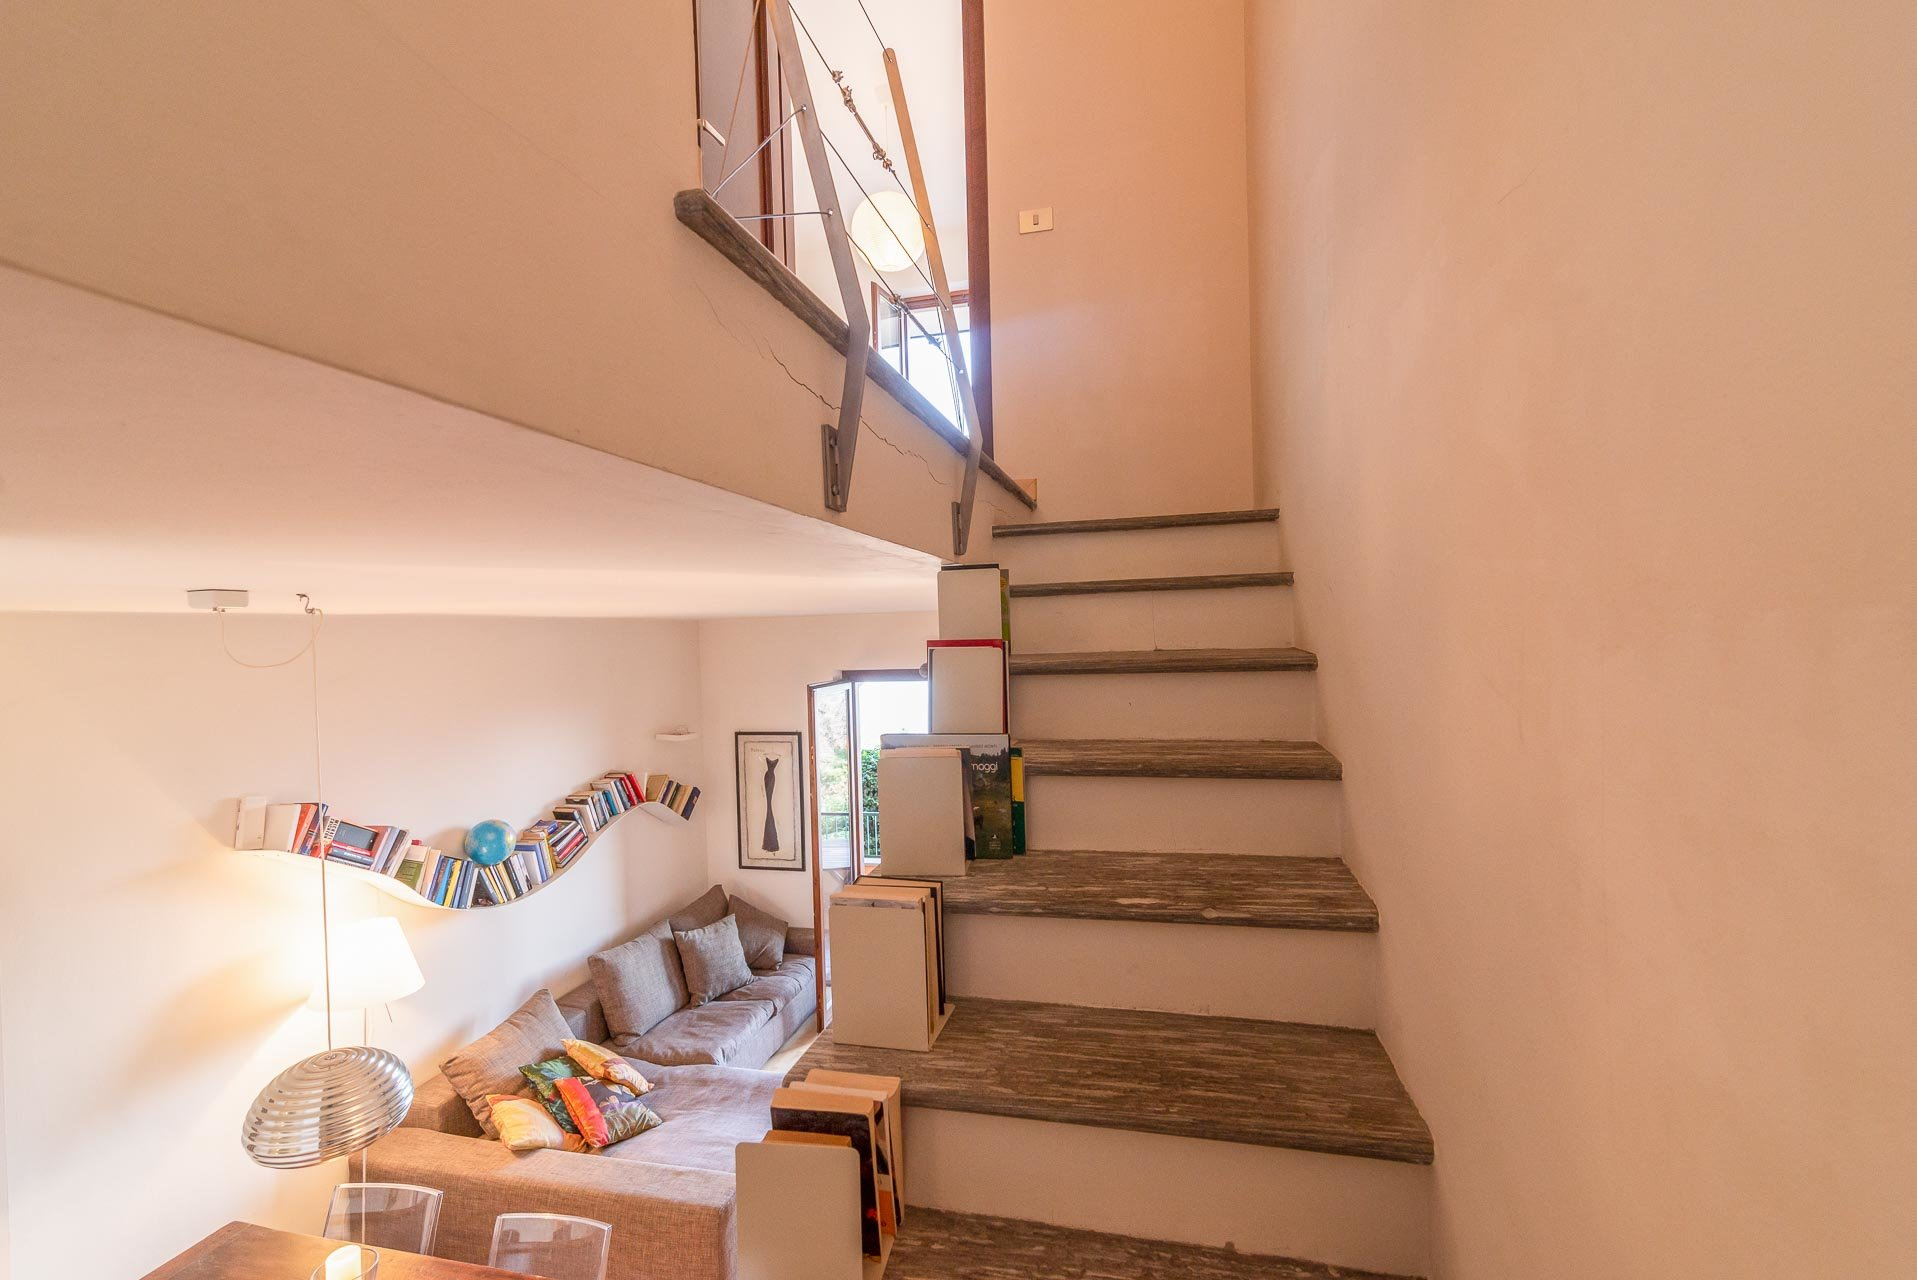 Apartment for sale in Stresa in a residence - sleeping area stairs